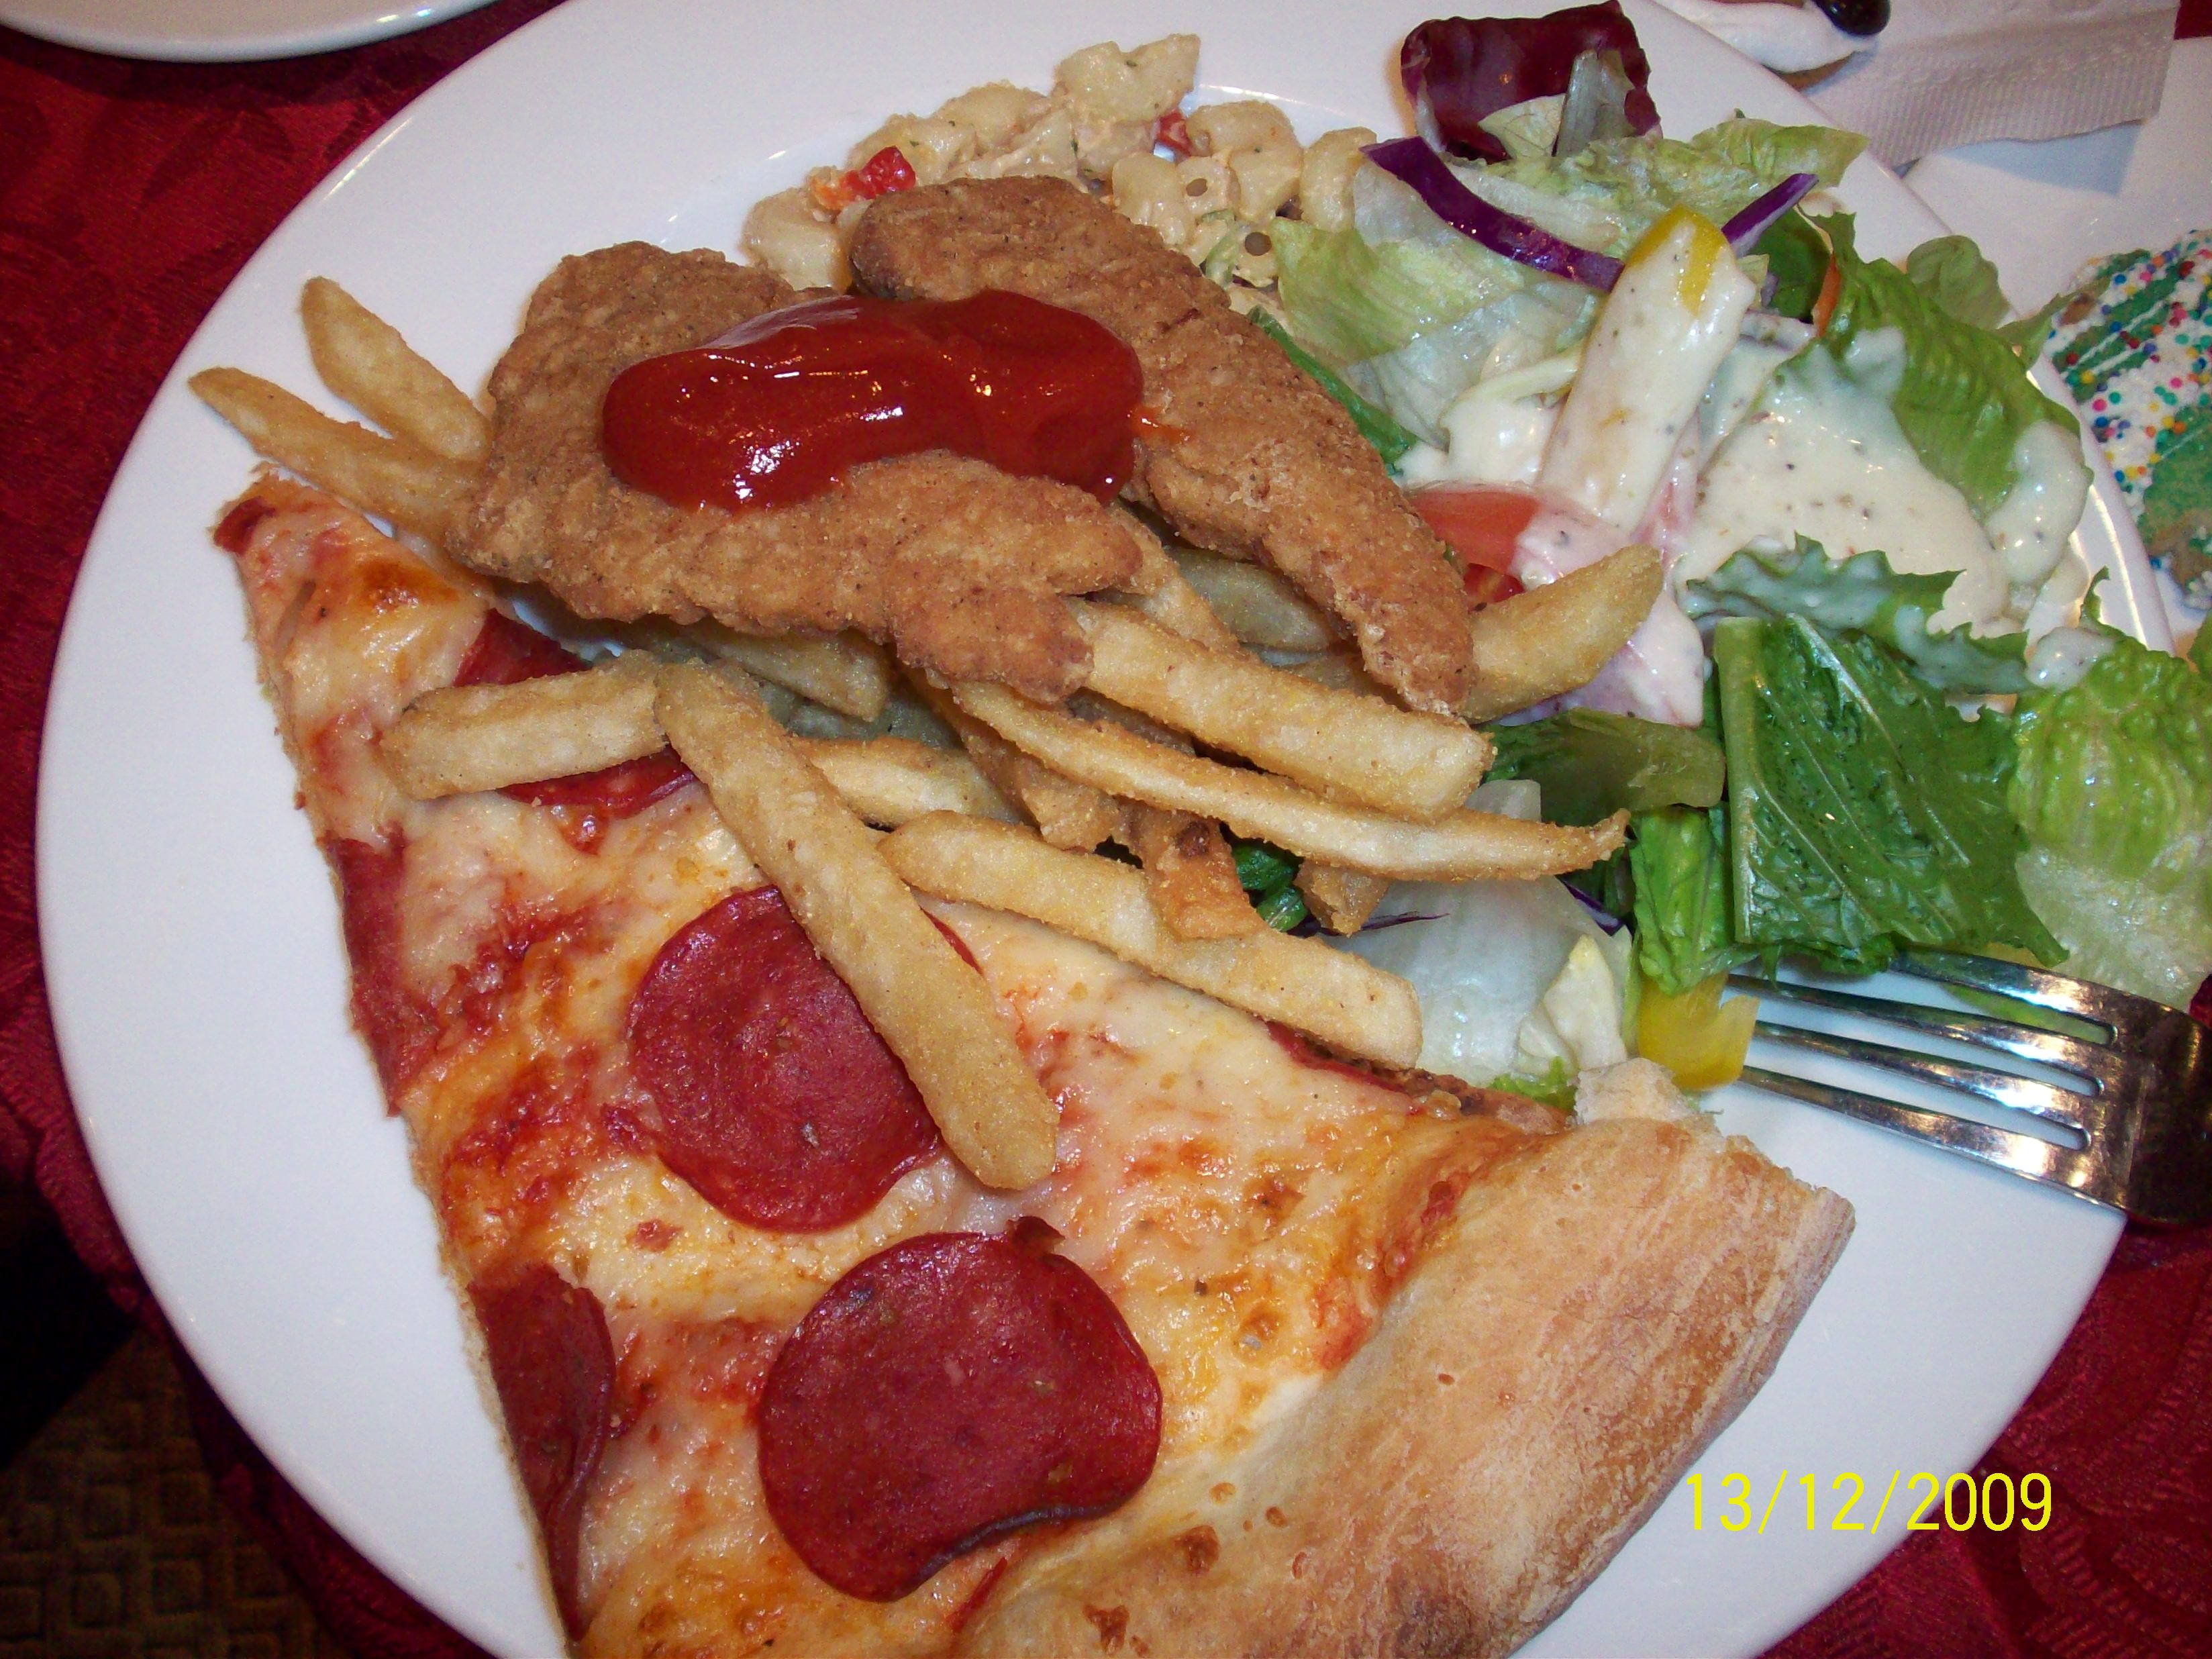 http://foodloader.net/cutie_2009-12-13_Pizza__Salad_and_Chicken_Strips.jpg